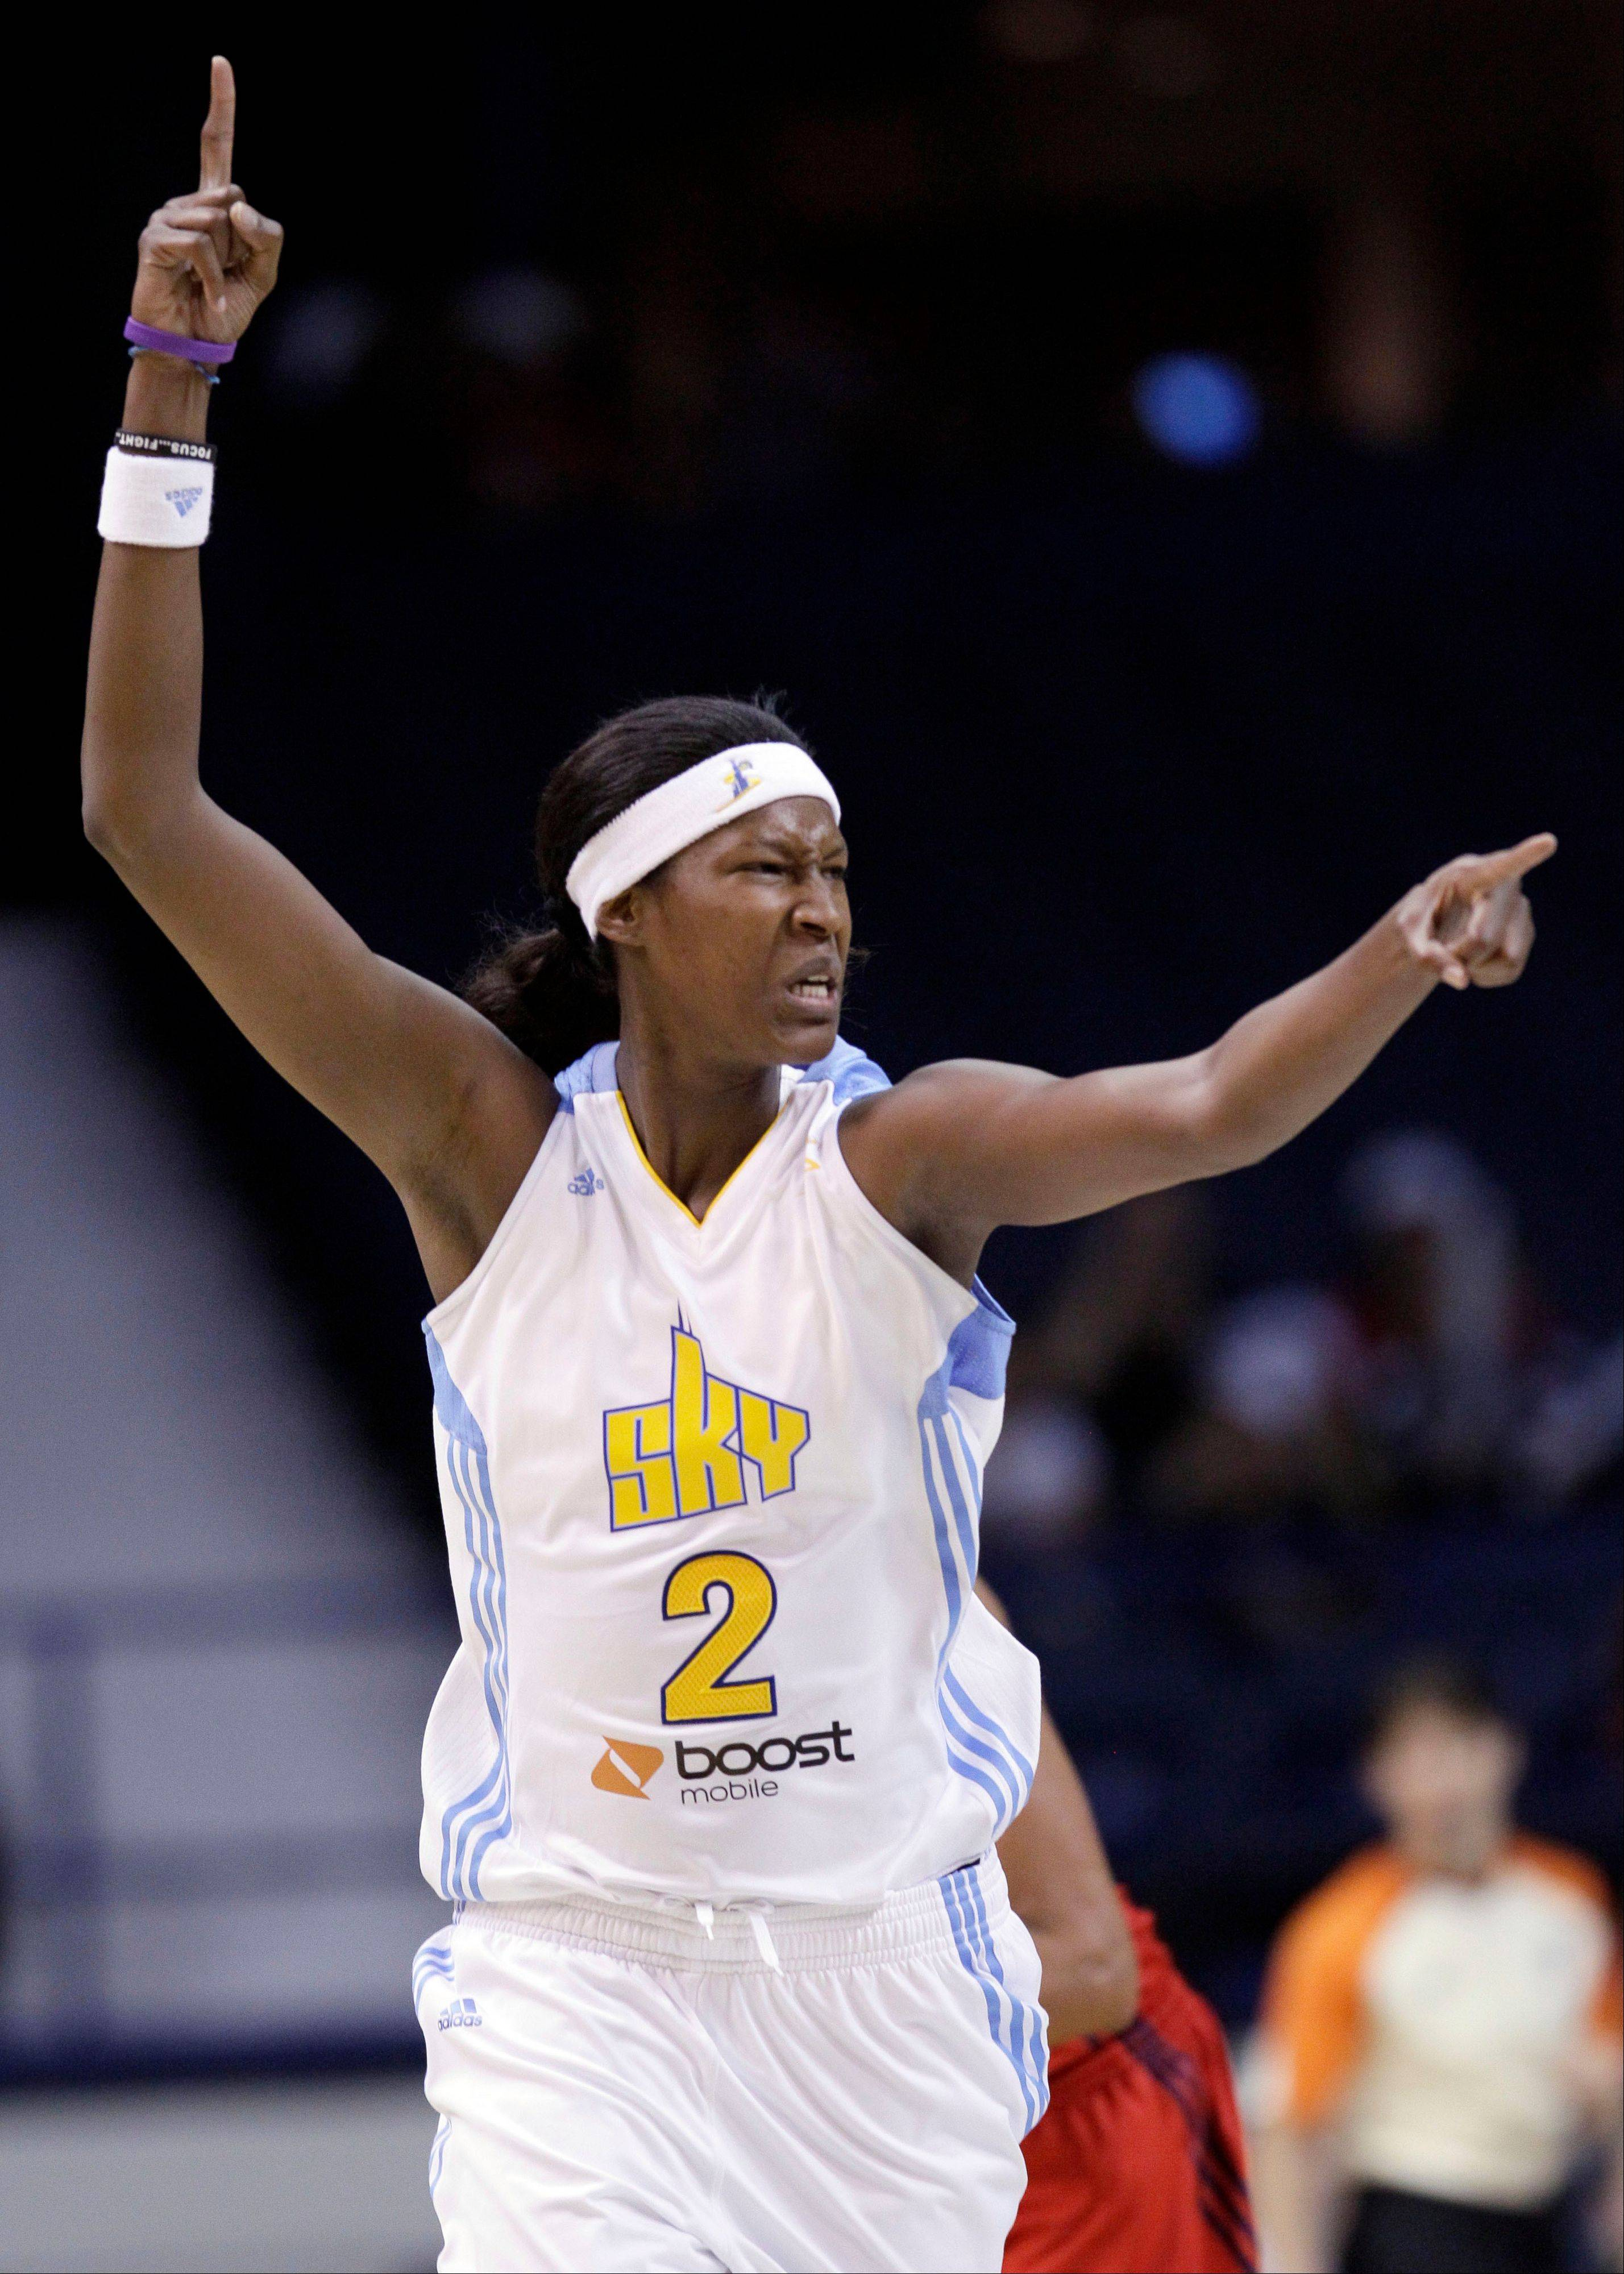 The Sky's Michelle Snow reacts after scoring a basket Friday against the Mystics.